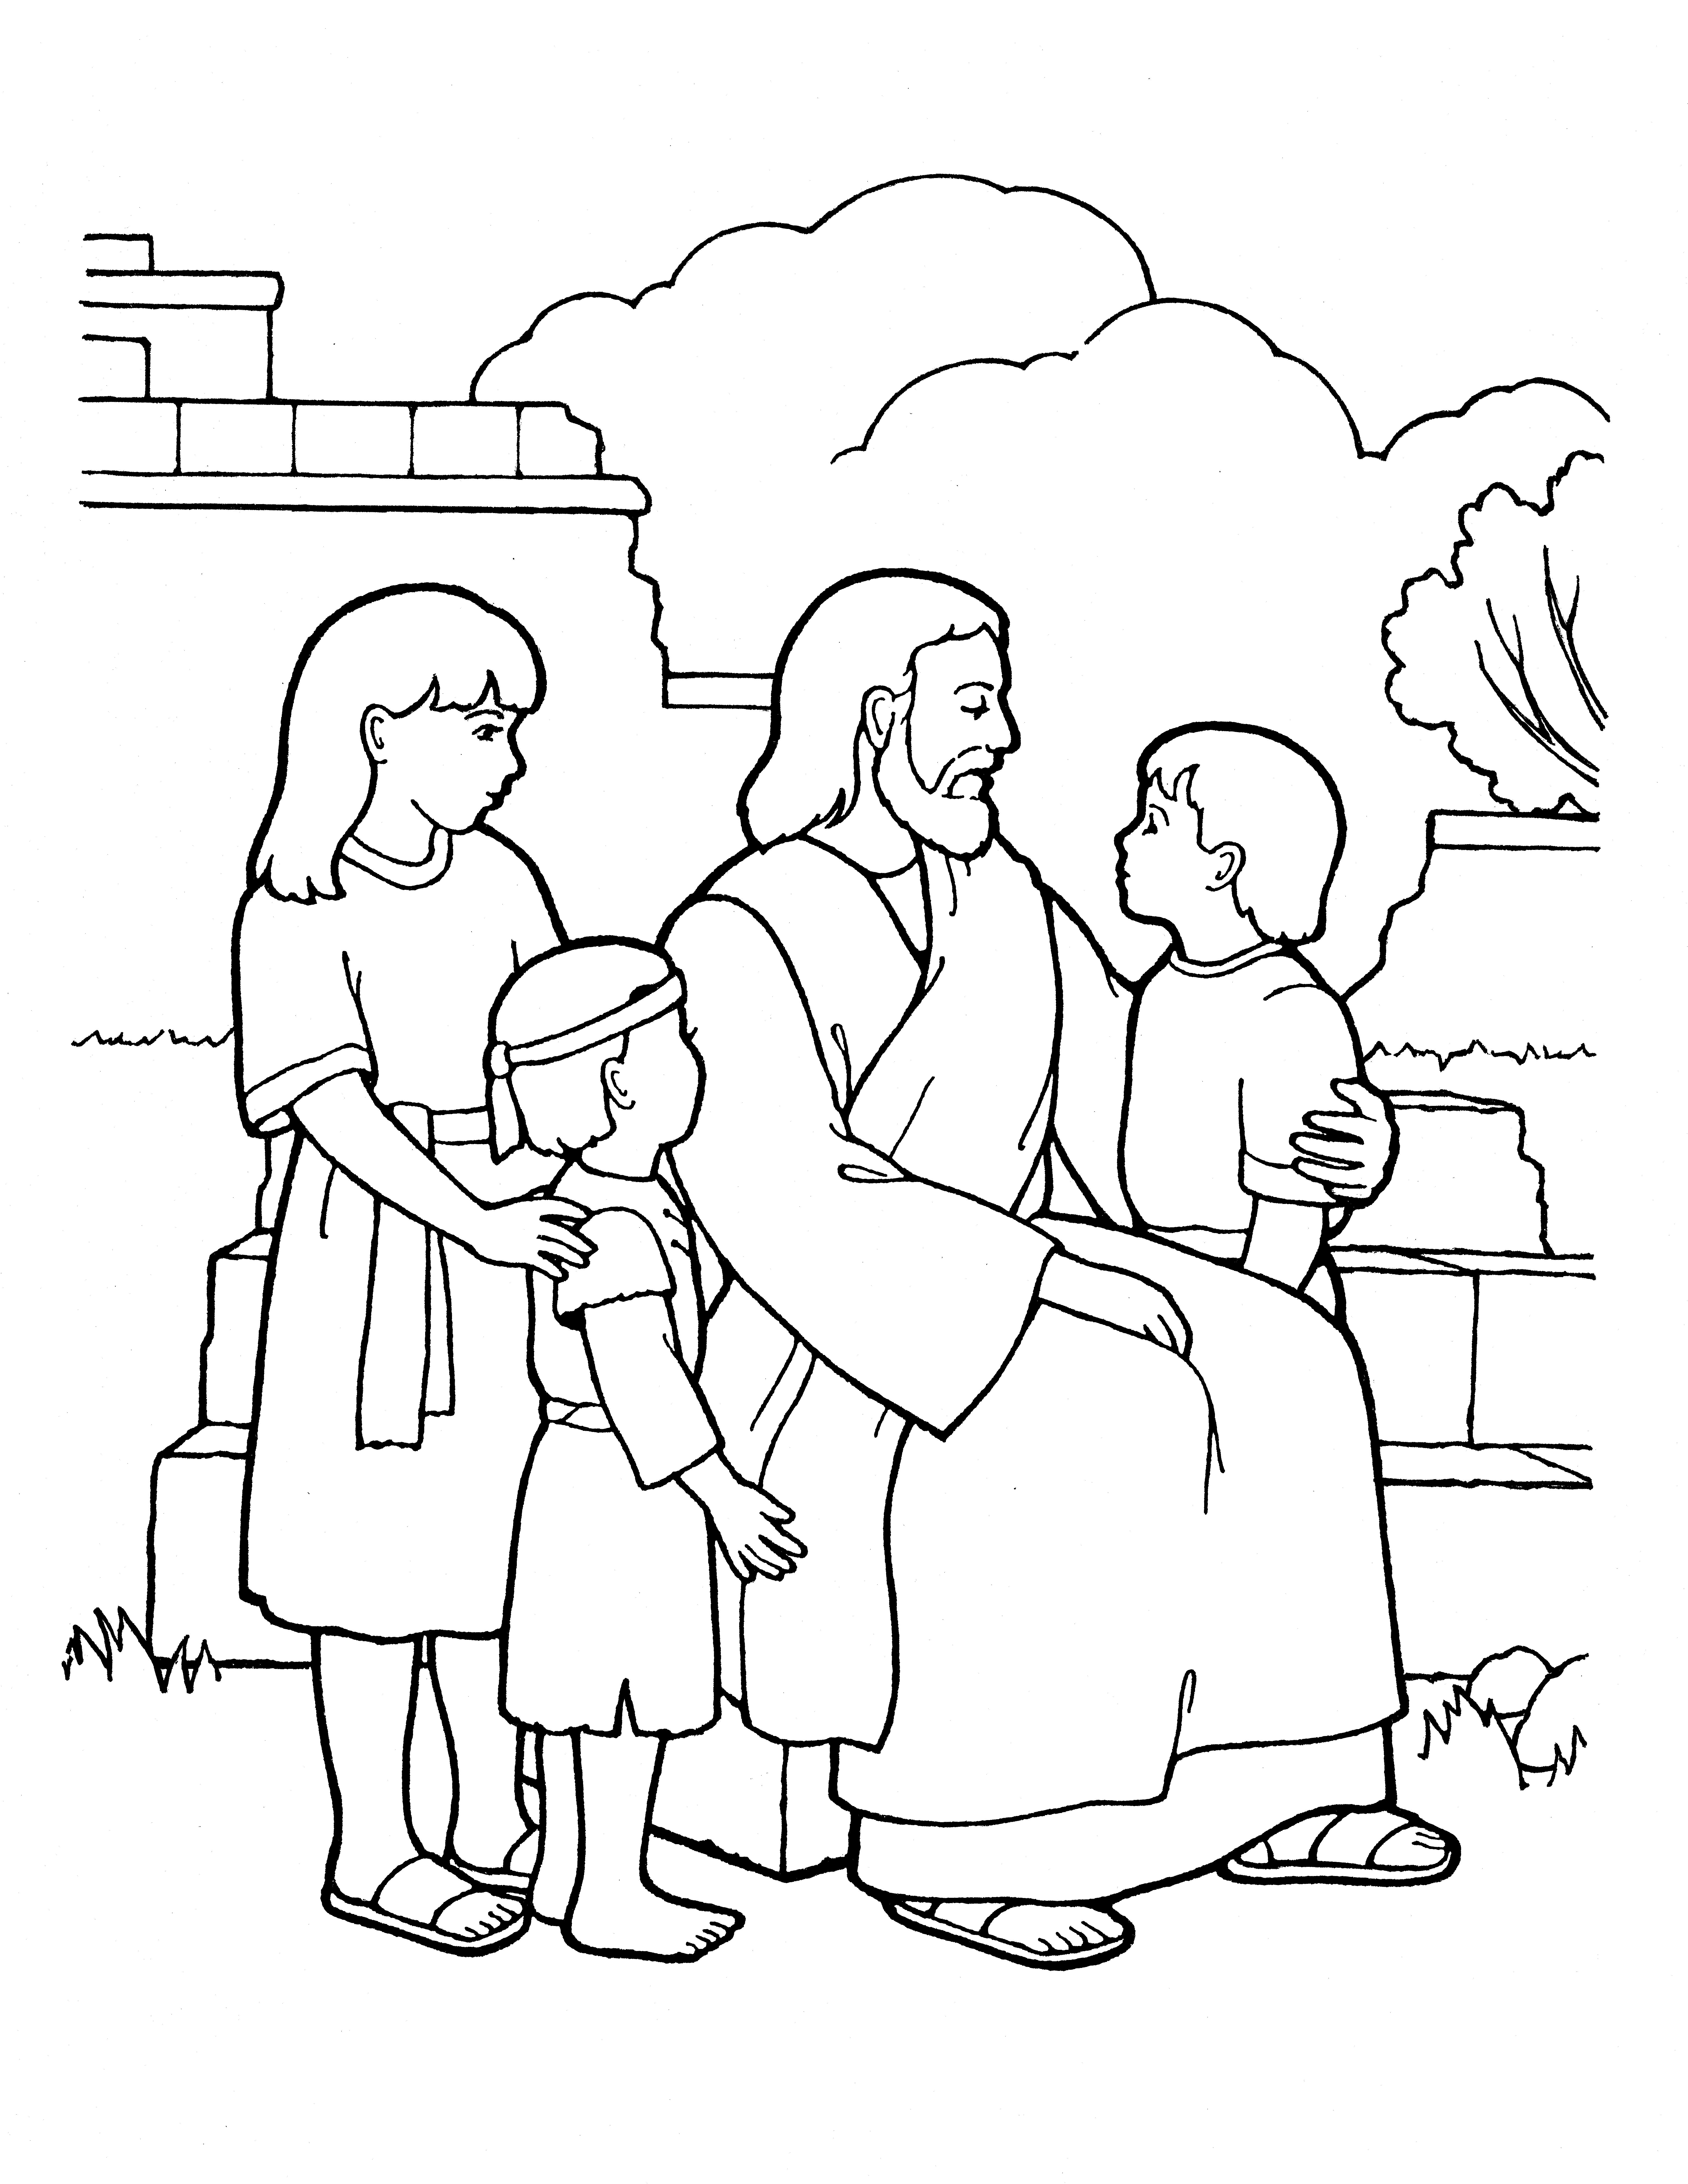 An illustration of Christ blessing the children, from the nursery manual Behold Your Little Ones (2008), page 95.